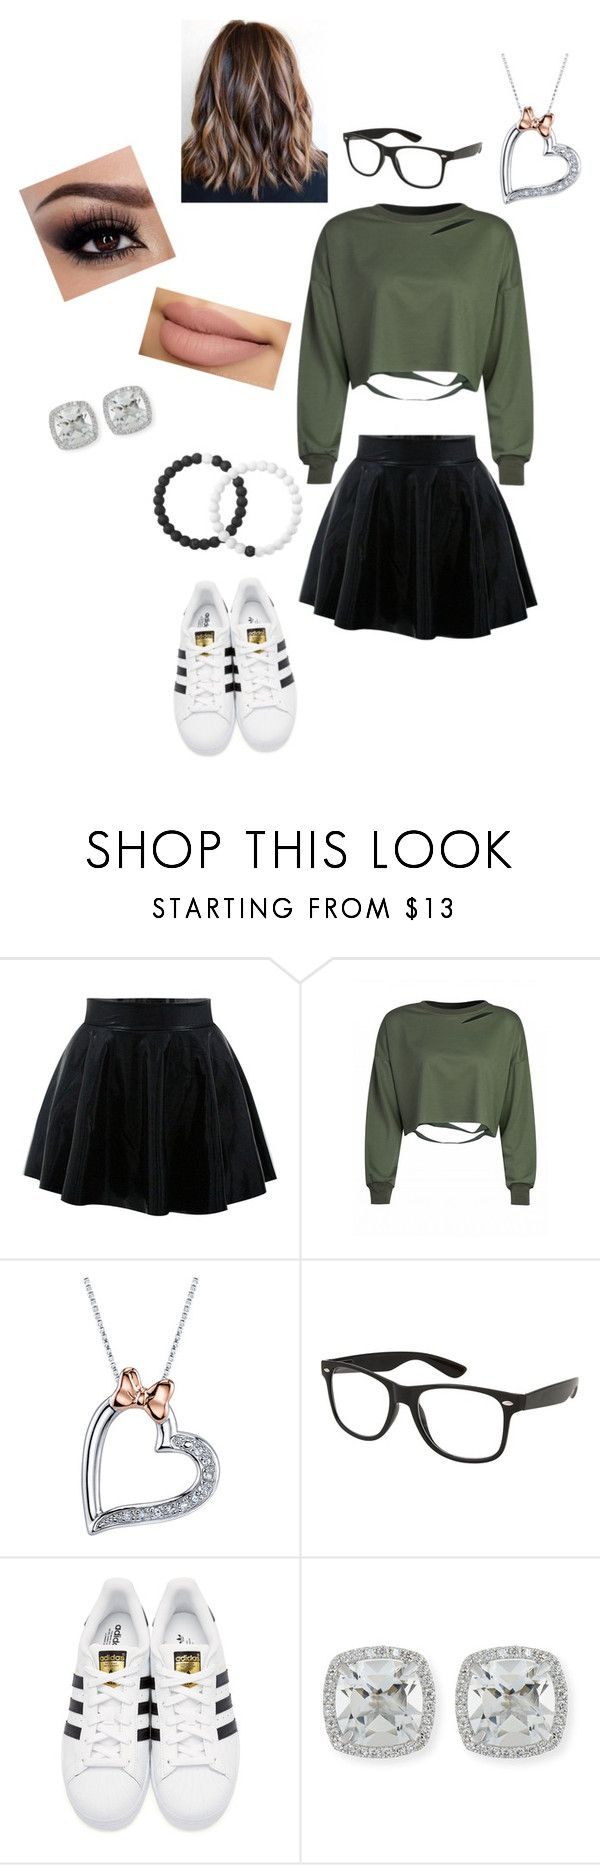 """""""My style #shorthair #skirt #Adidas"""" by rakelle-stewart ❤ liked on Polyvore featuring Disney, adidas Originals, Frederic Sage and Lokai"""